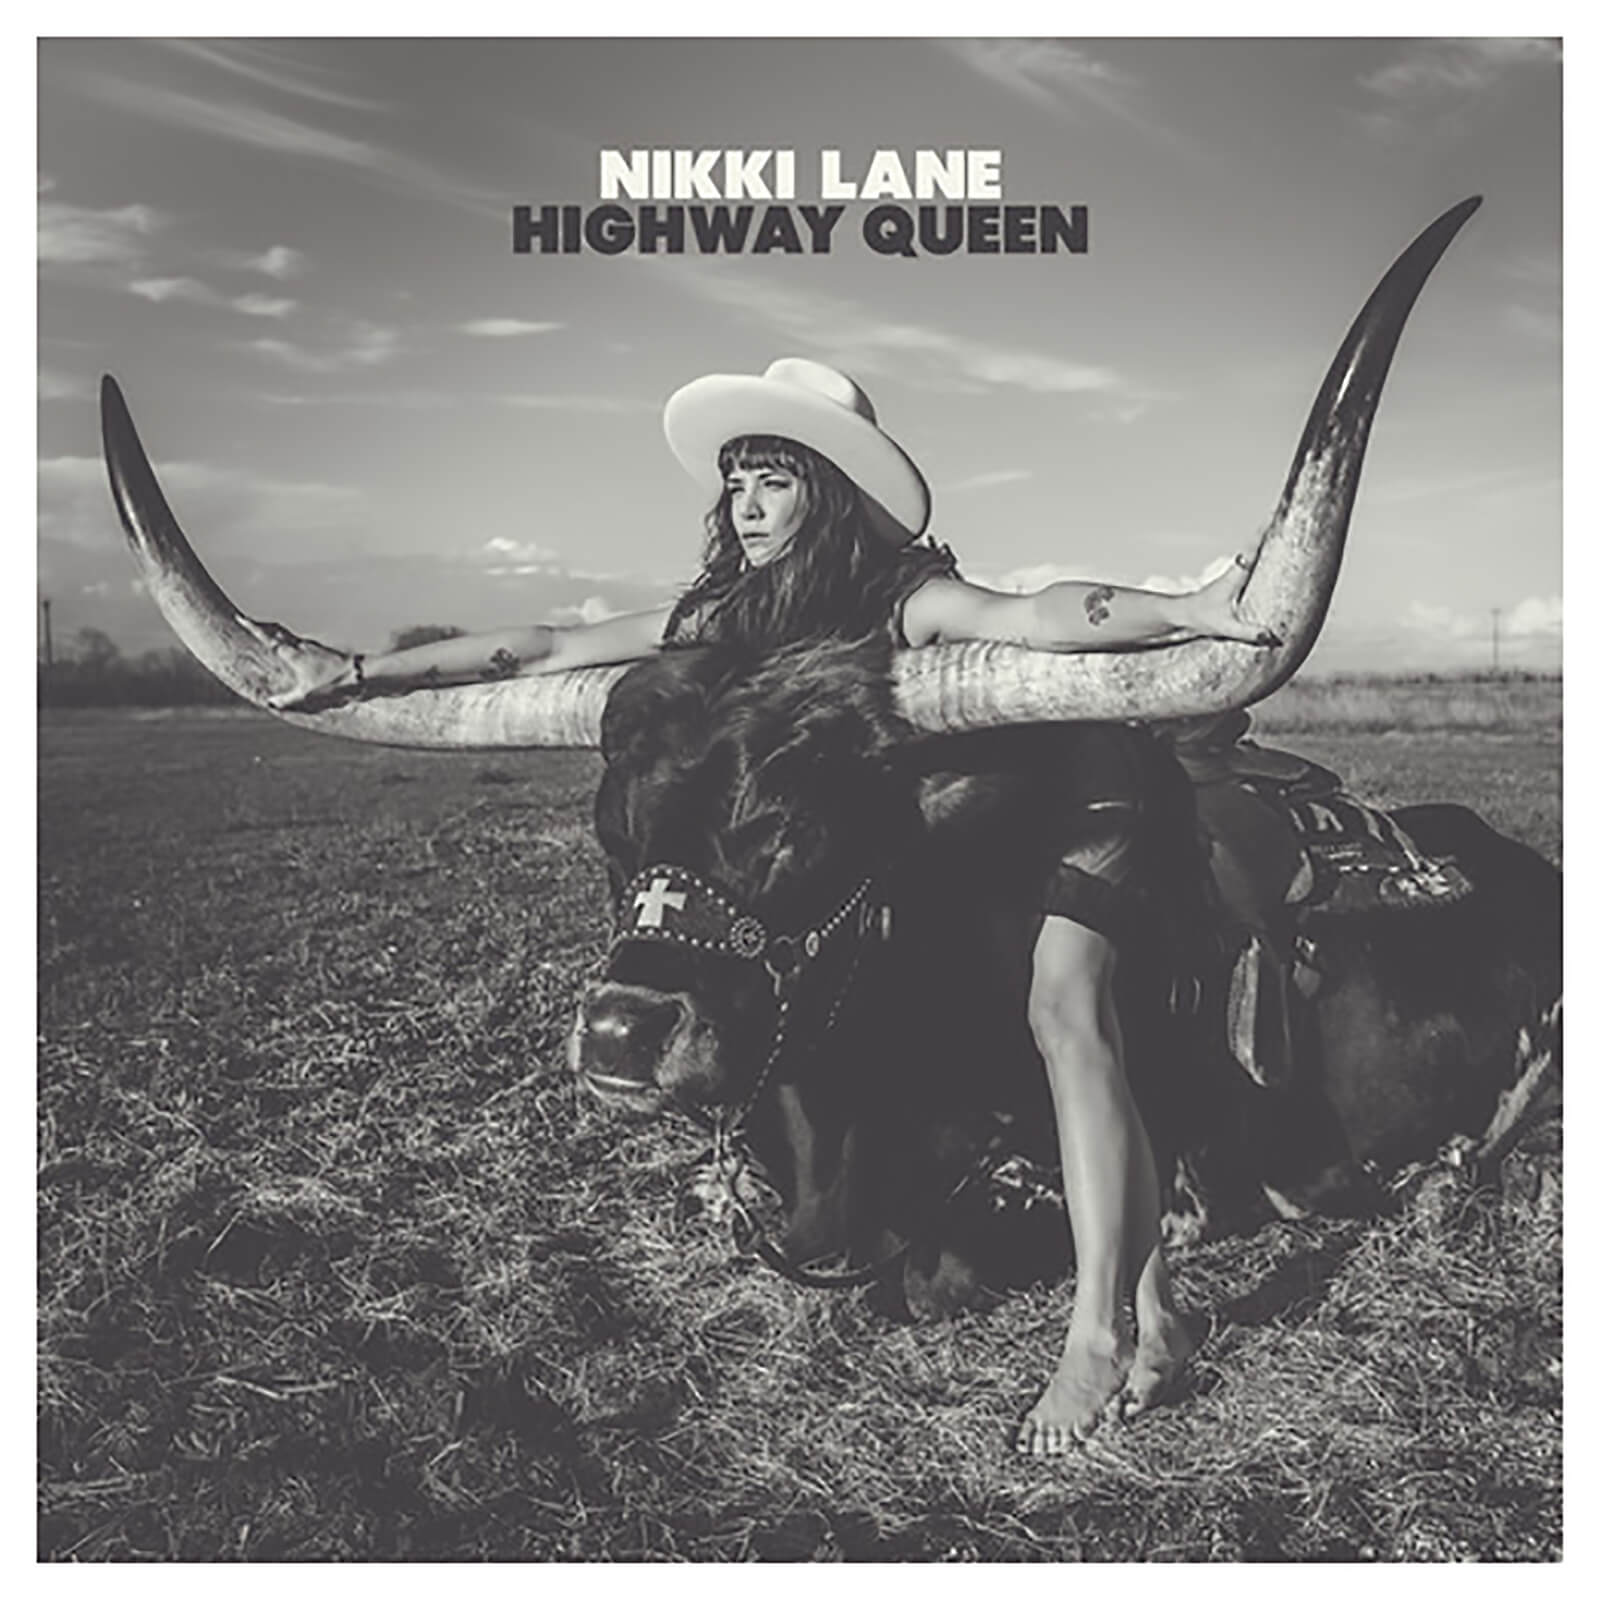 Nikki Lane - Highway Queen - Vinyl